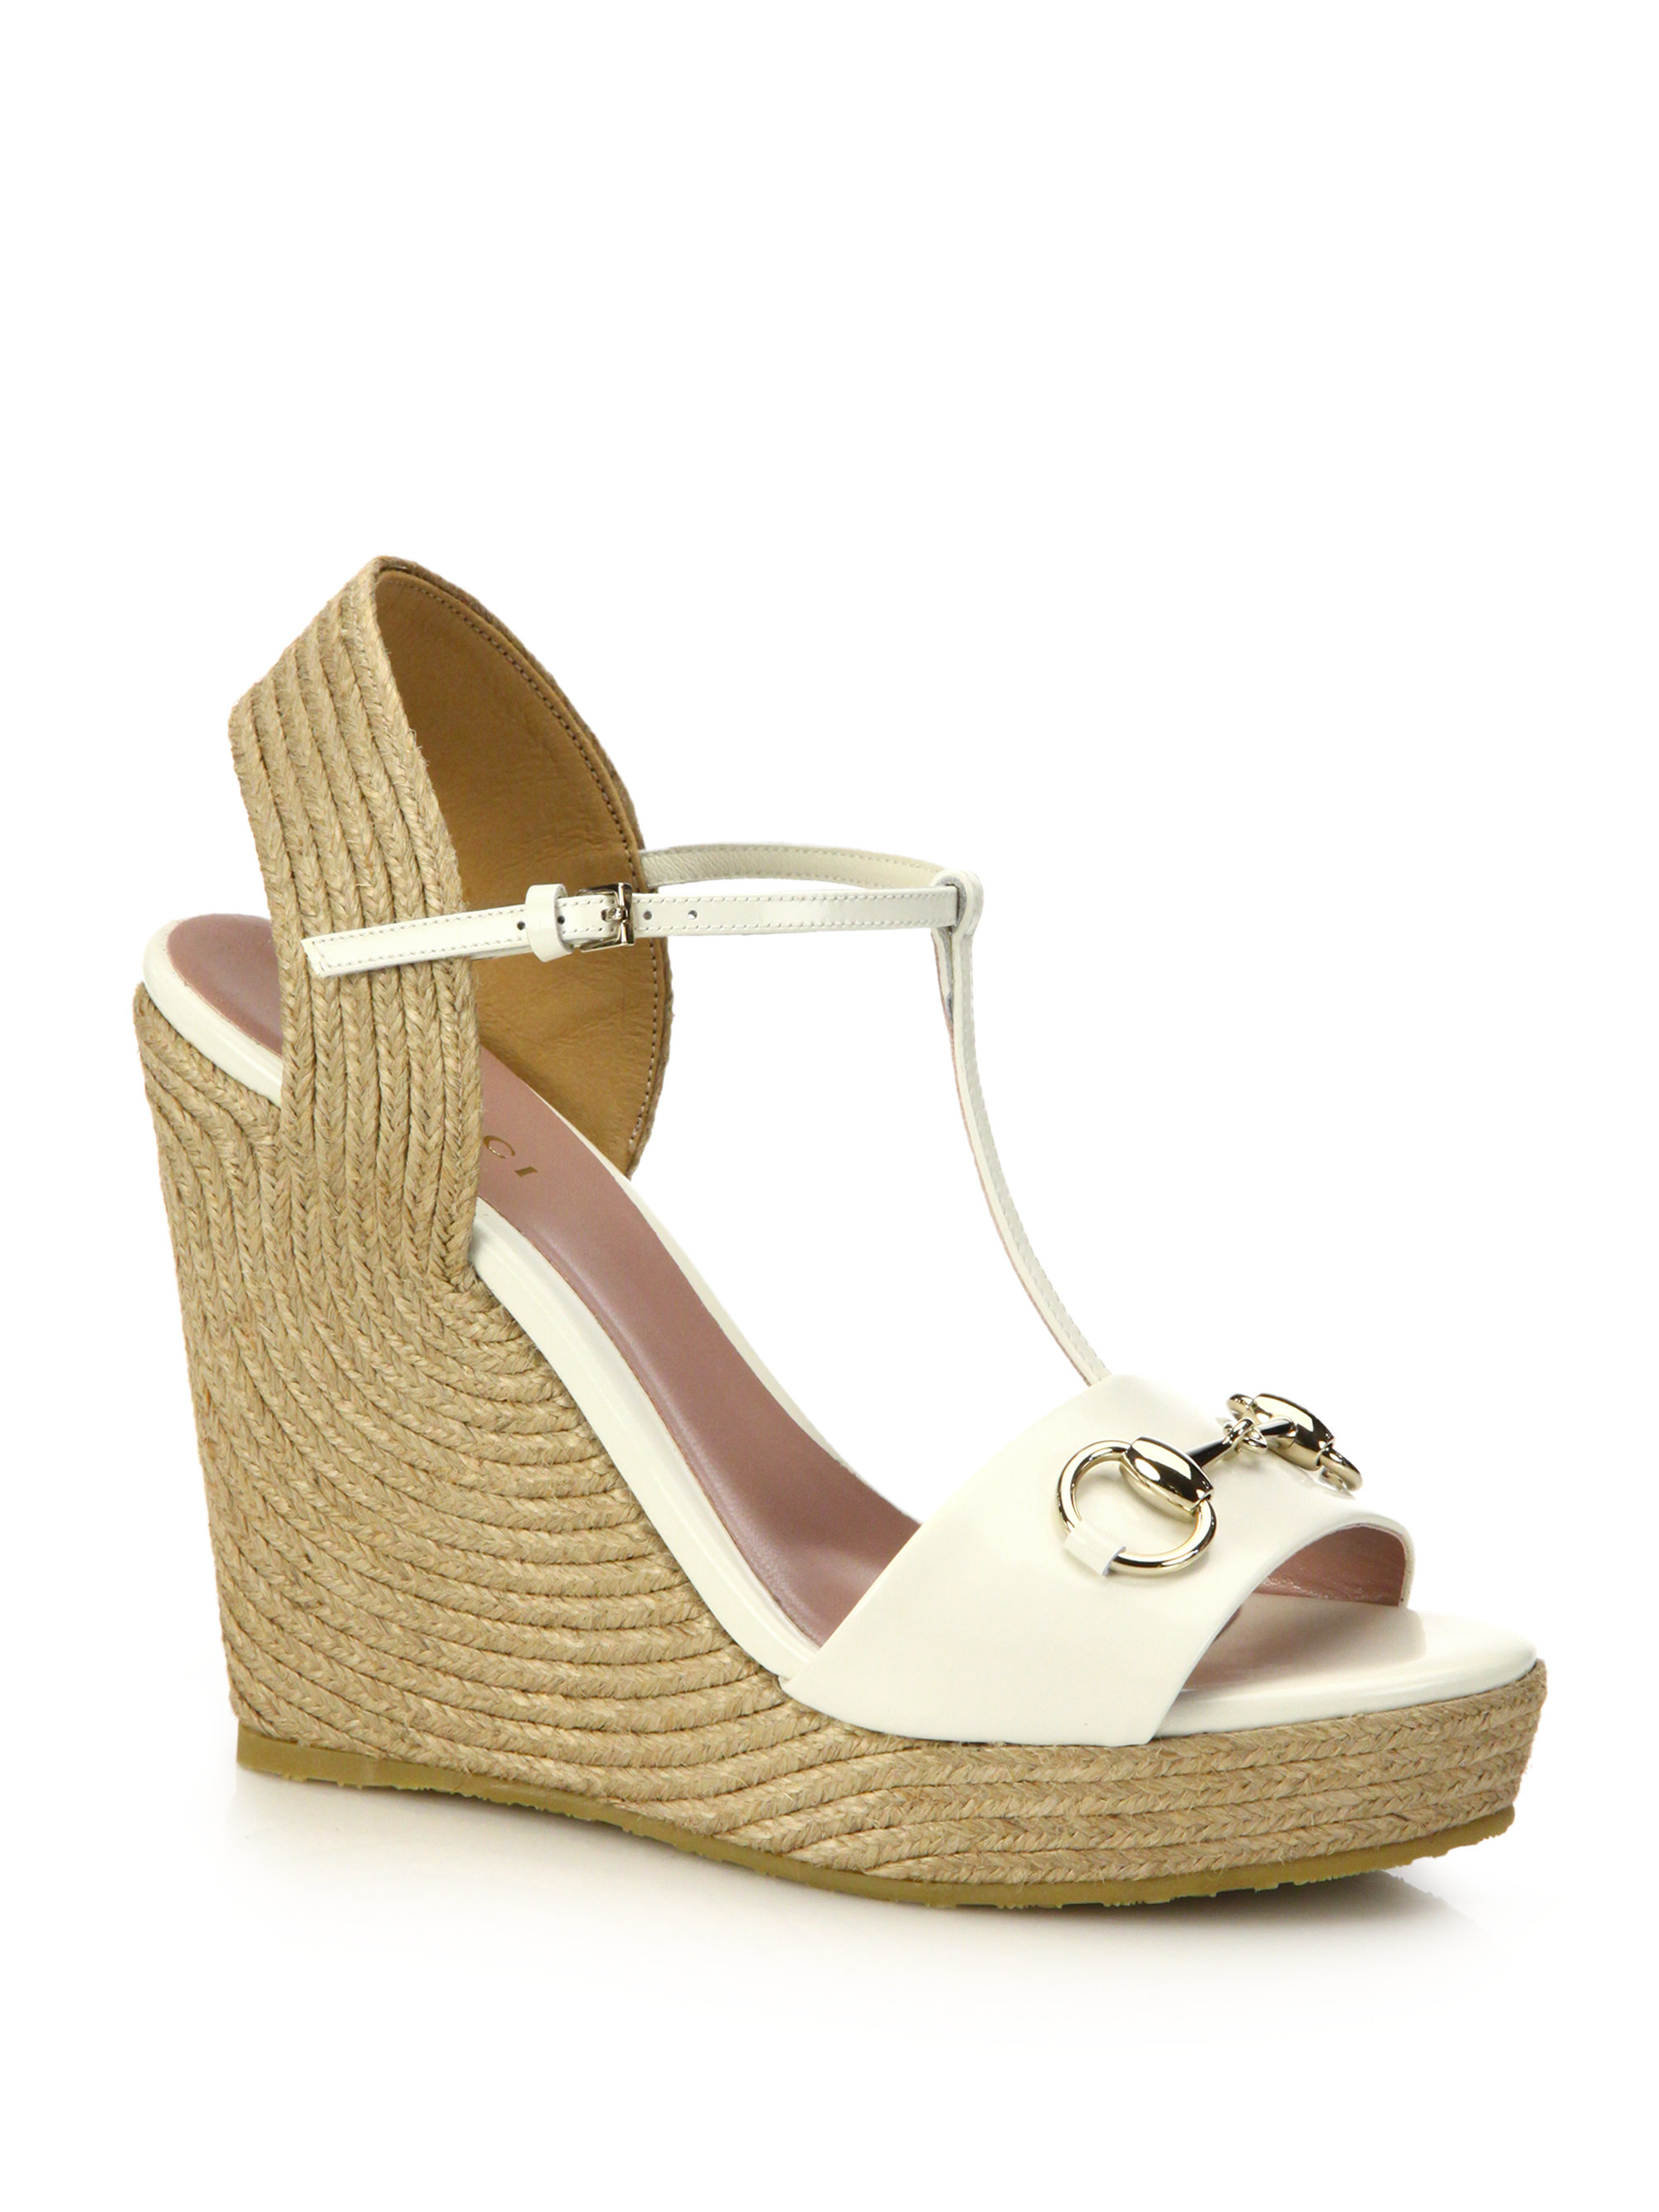 92e9c0bada3b3c Lyst - Gucci Patent Leather Horsebit Espadrille Wedge Sandals in White